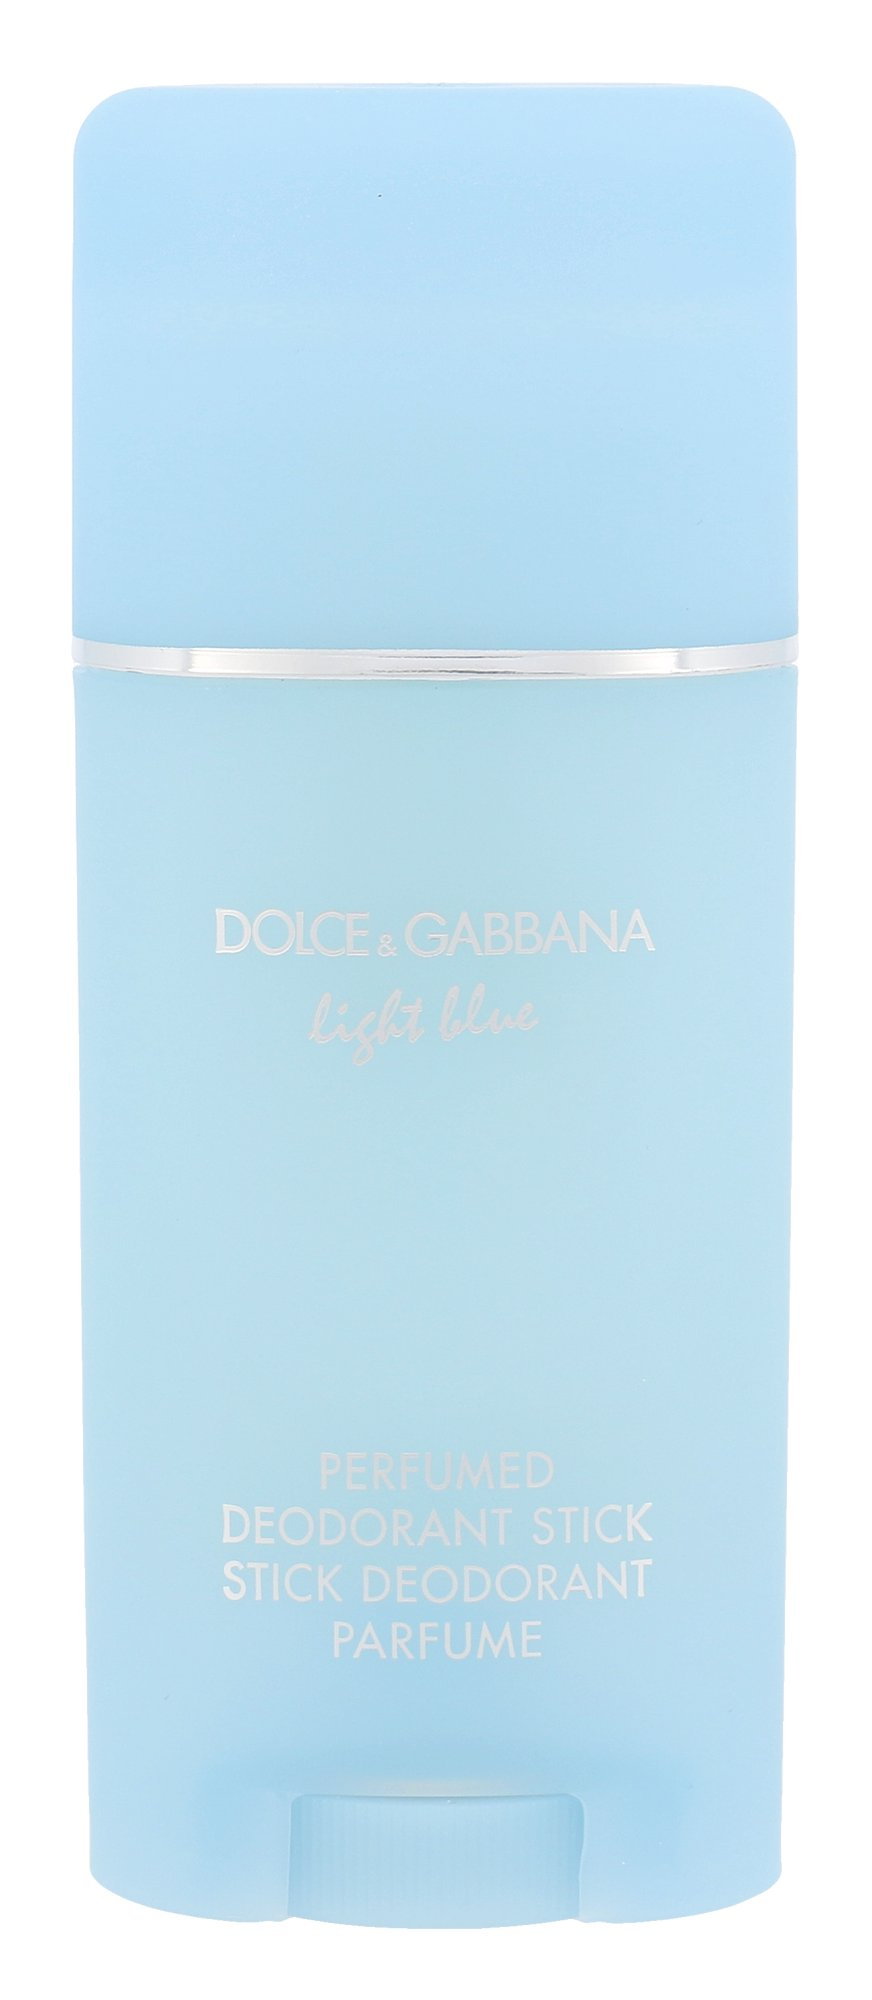 Dolce&Gabbana Light Blue, deo stift 50ml